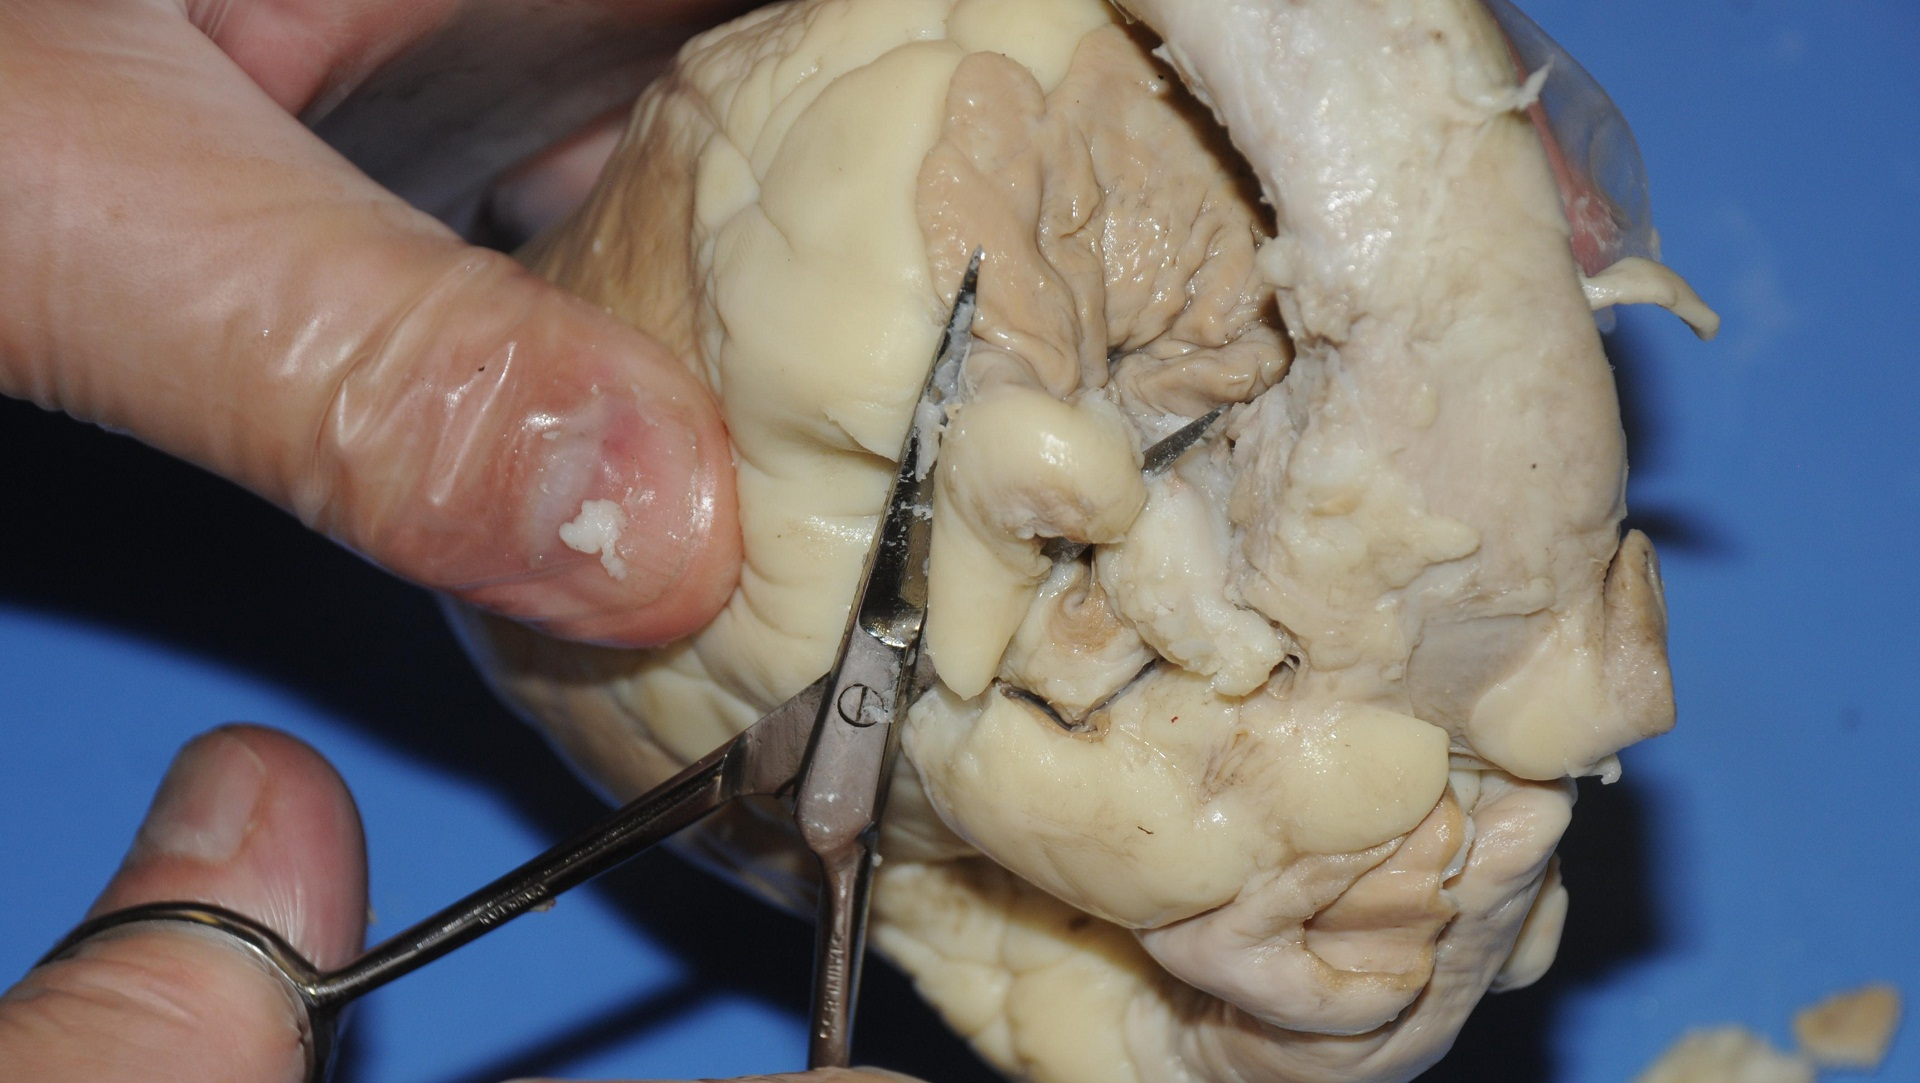 Dissection Videos for Classroom Use